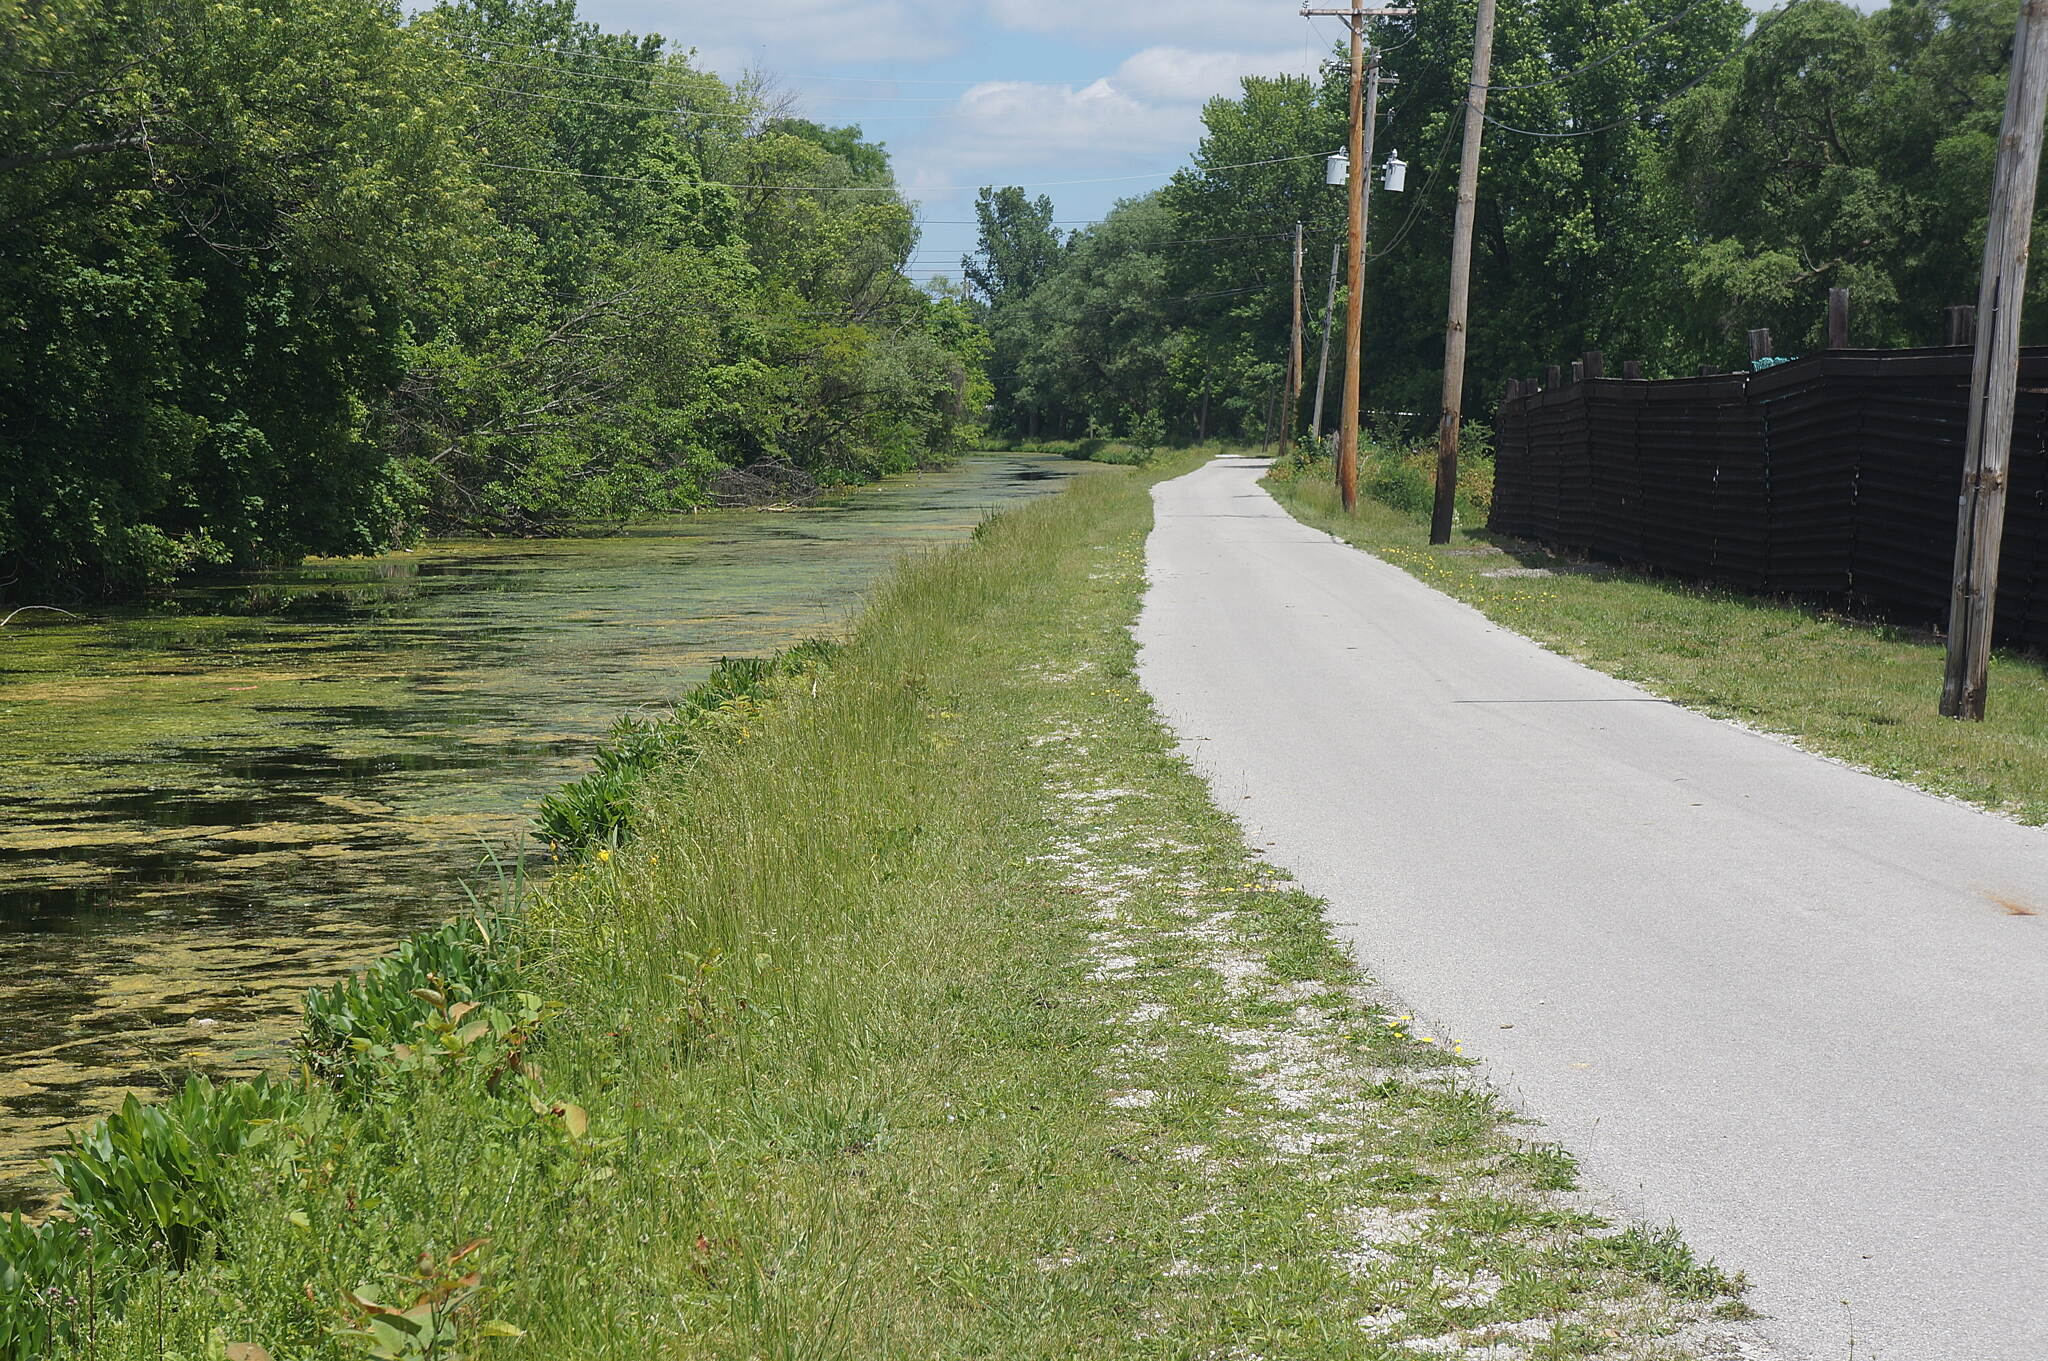 Ohio & Erie Canal Towpath Trail South of Barberton Looking north toward Barberton This is not the prettiest part of the trail with the junkyards to the right.